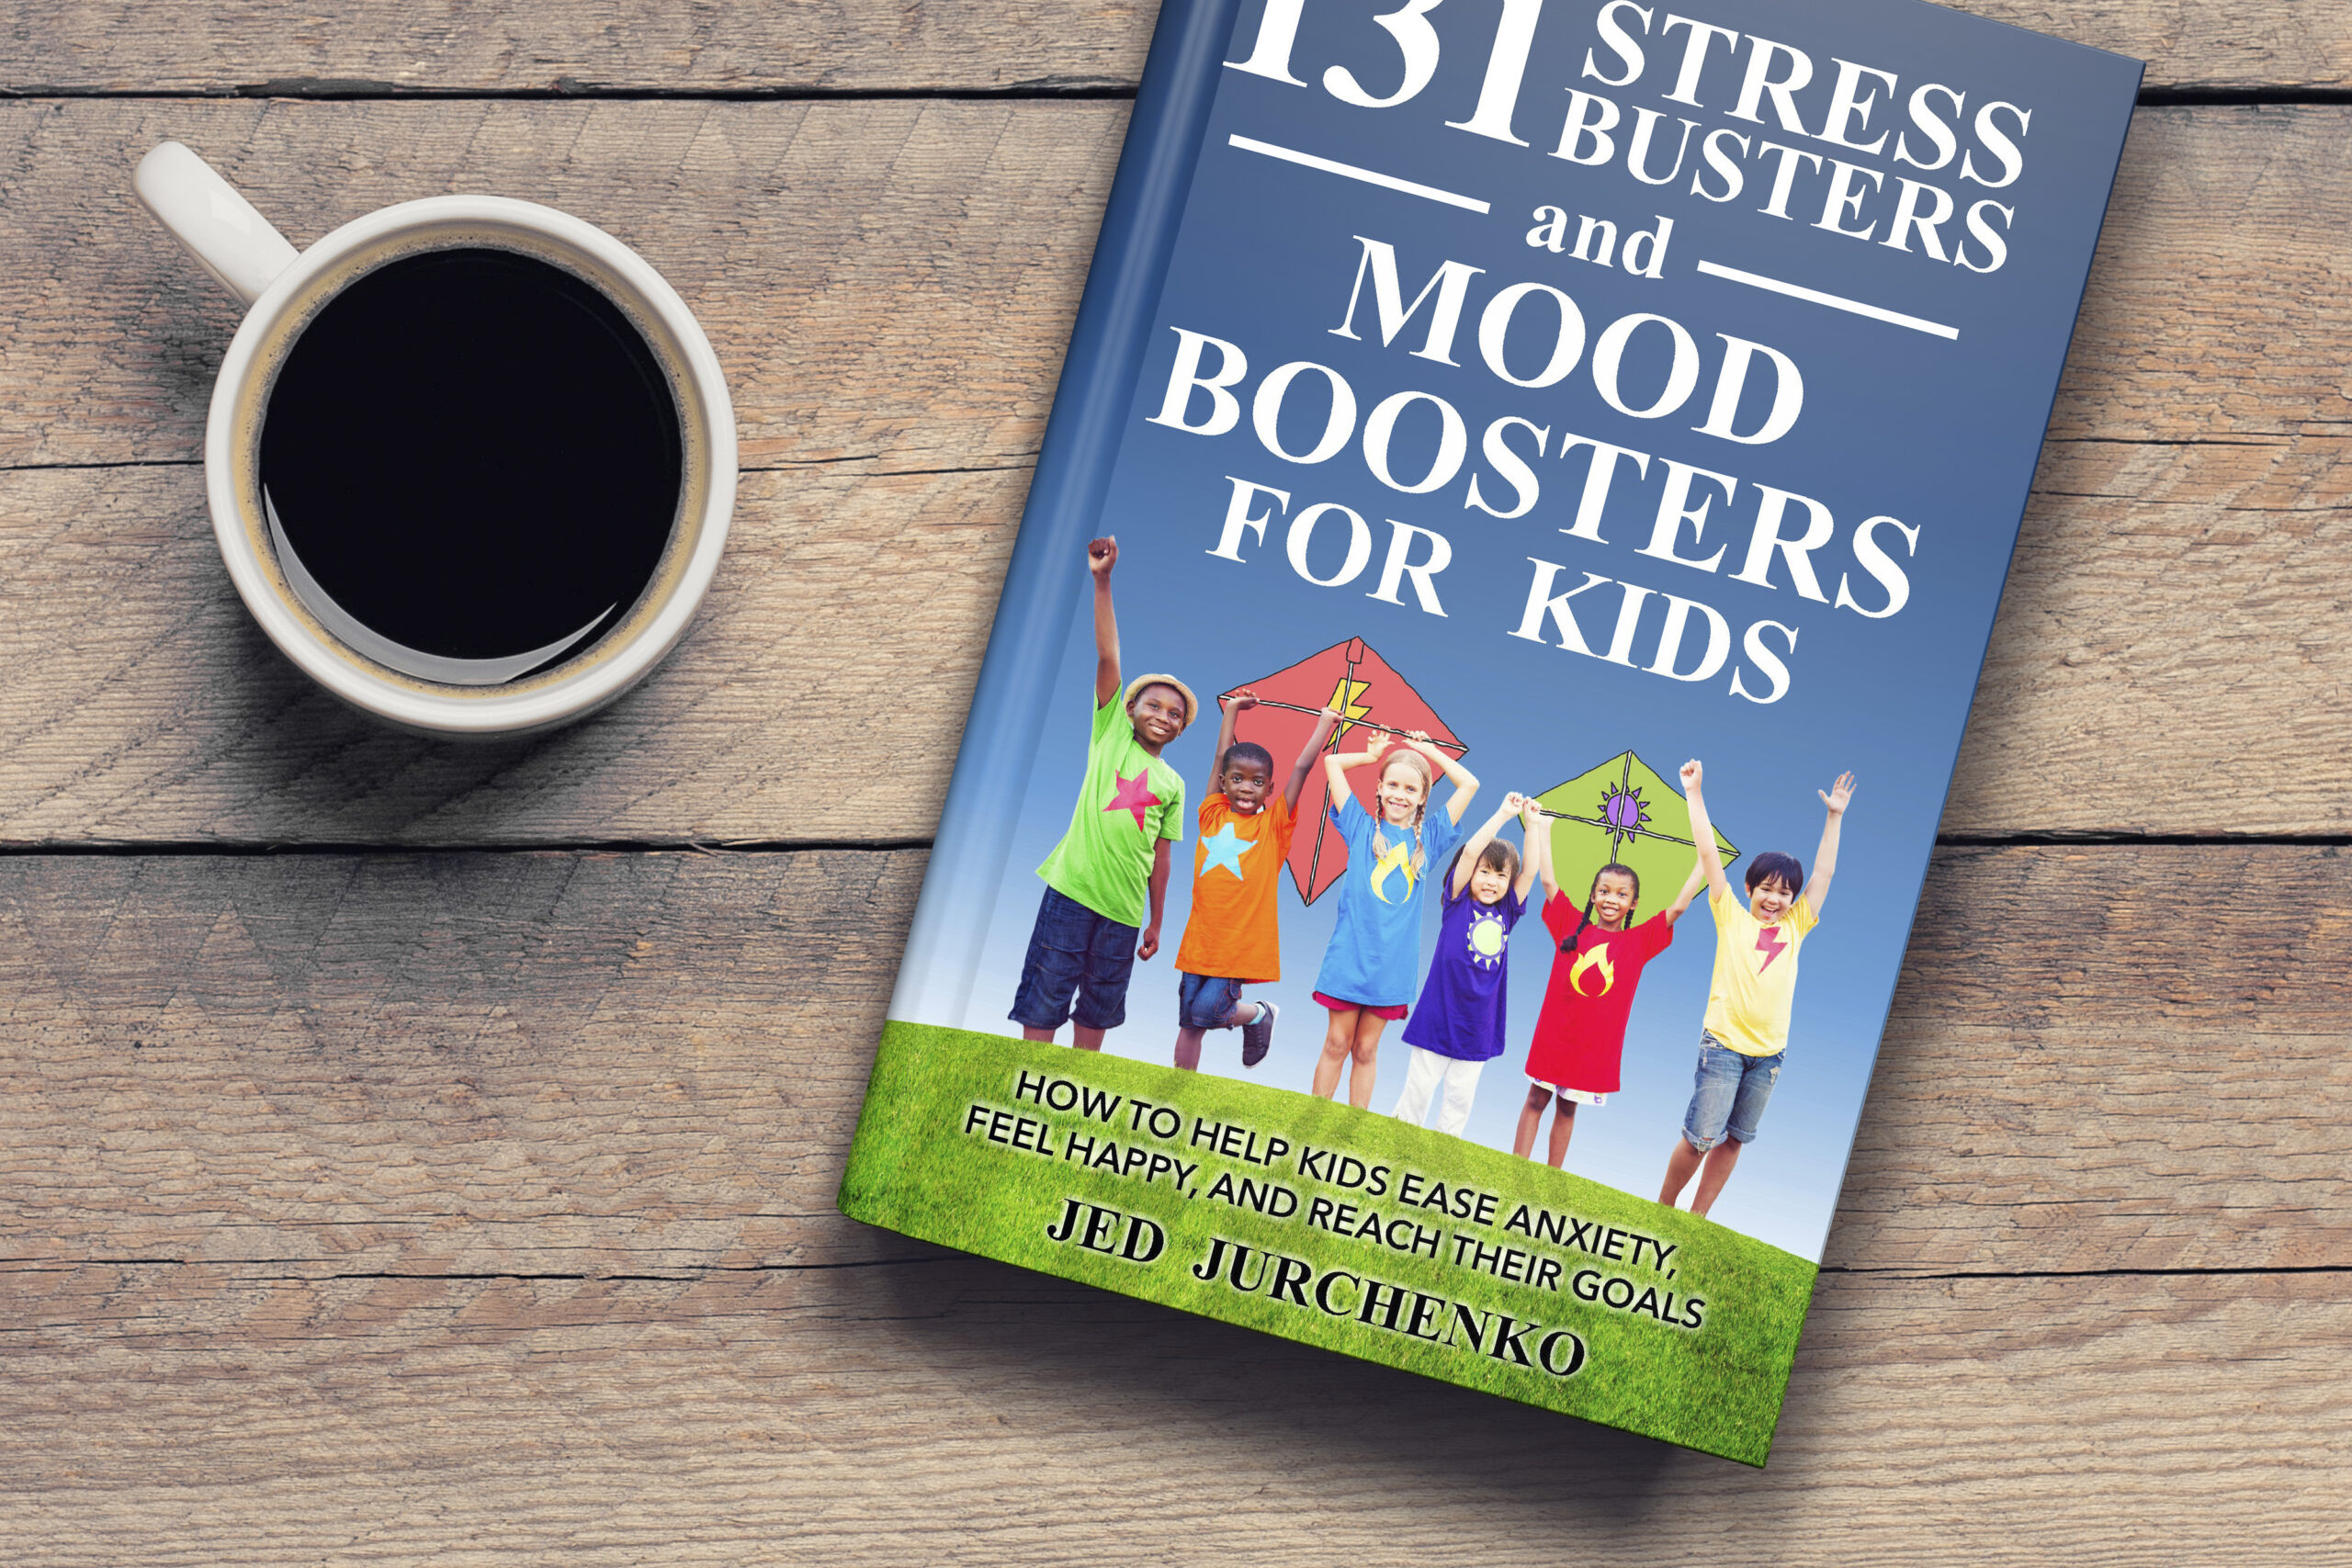 The 131 Stress Busters and Mood Boosters for Kids positive parenting book